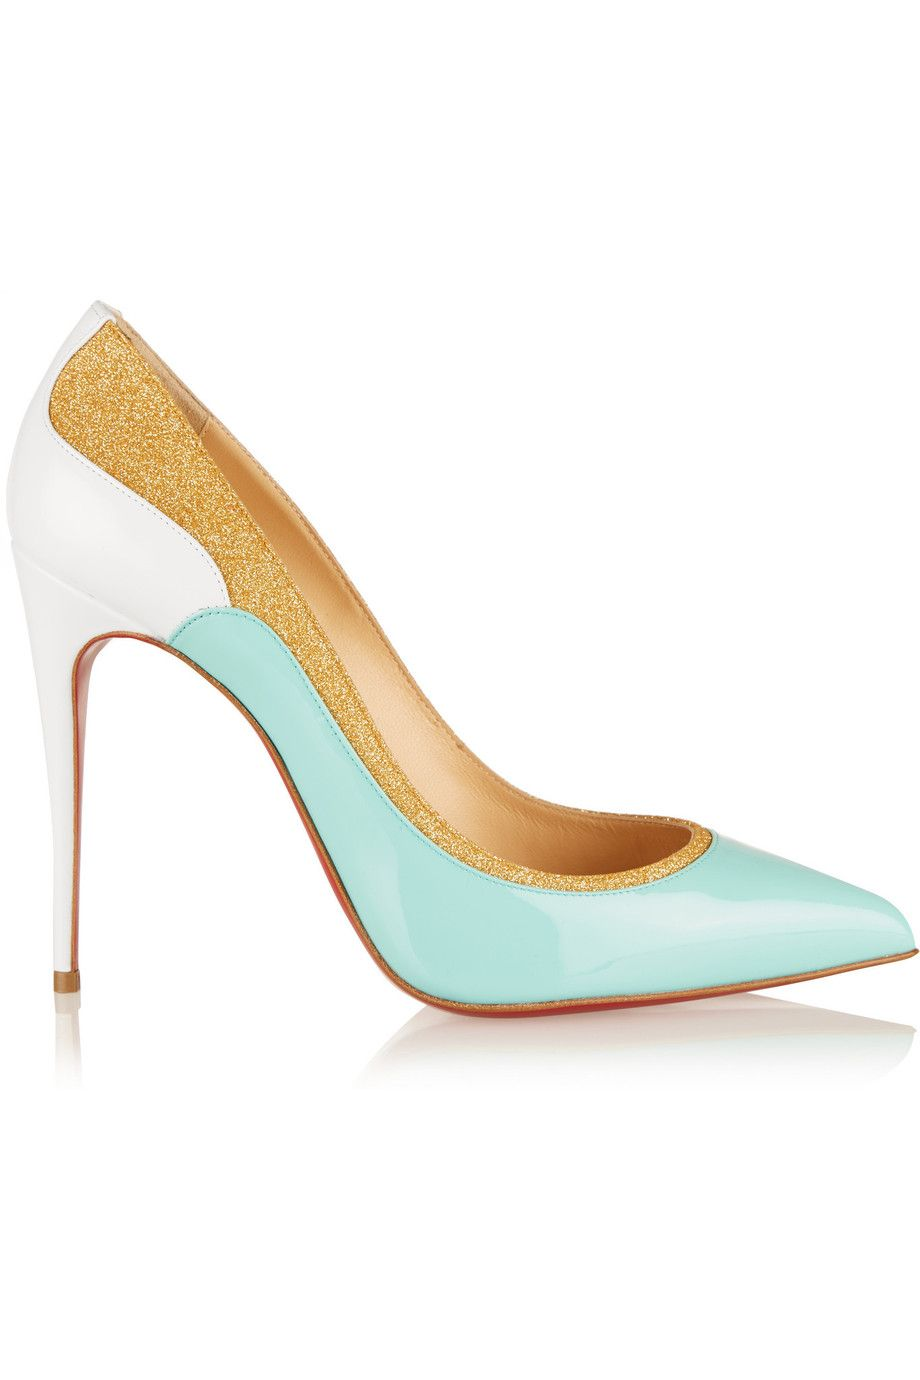 2cead92b46d8 Shop on-sale Christian Louboutin Tucsick 100 glitter-trimmed patent-leather  pumps. Browse other discount designer Pumps   more on The Most Fashionable  ...